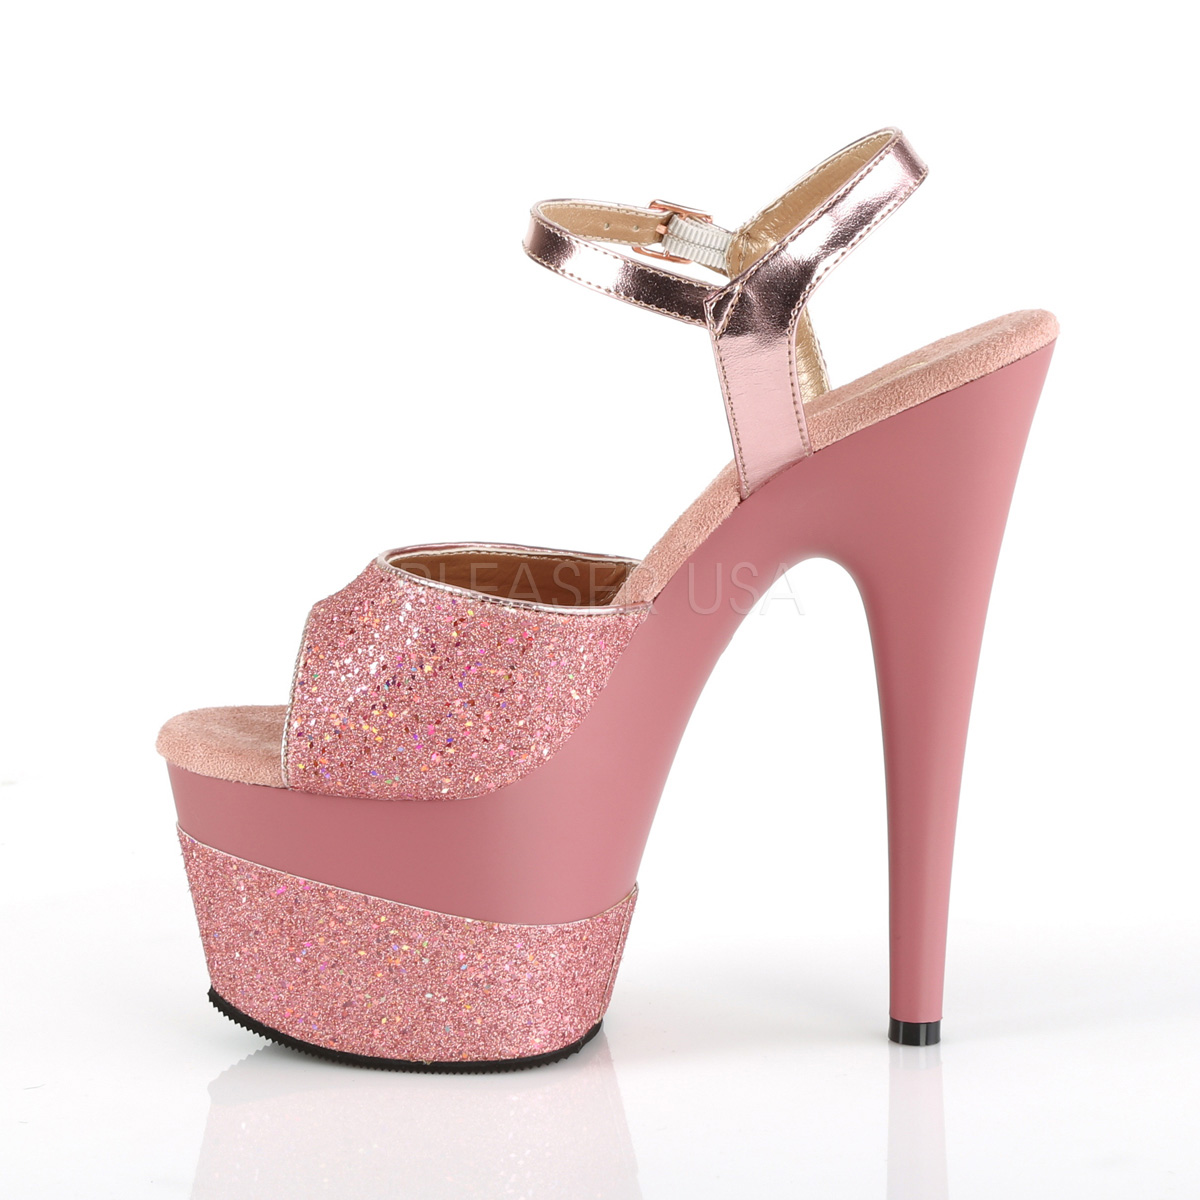 179f2da212 Rose 18 cm ADORE-709-2G glitter platform sandals shoes